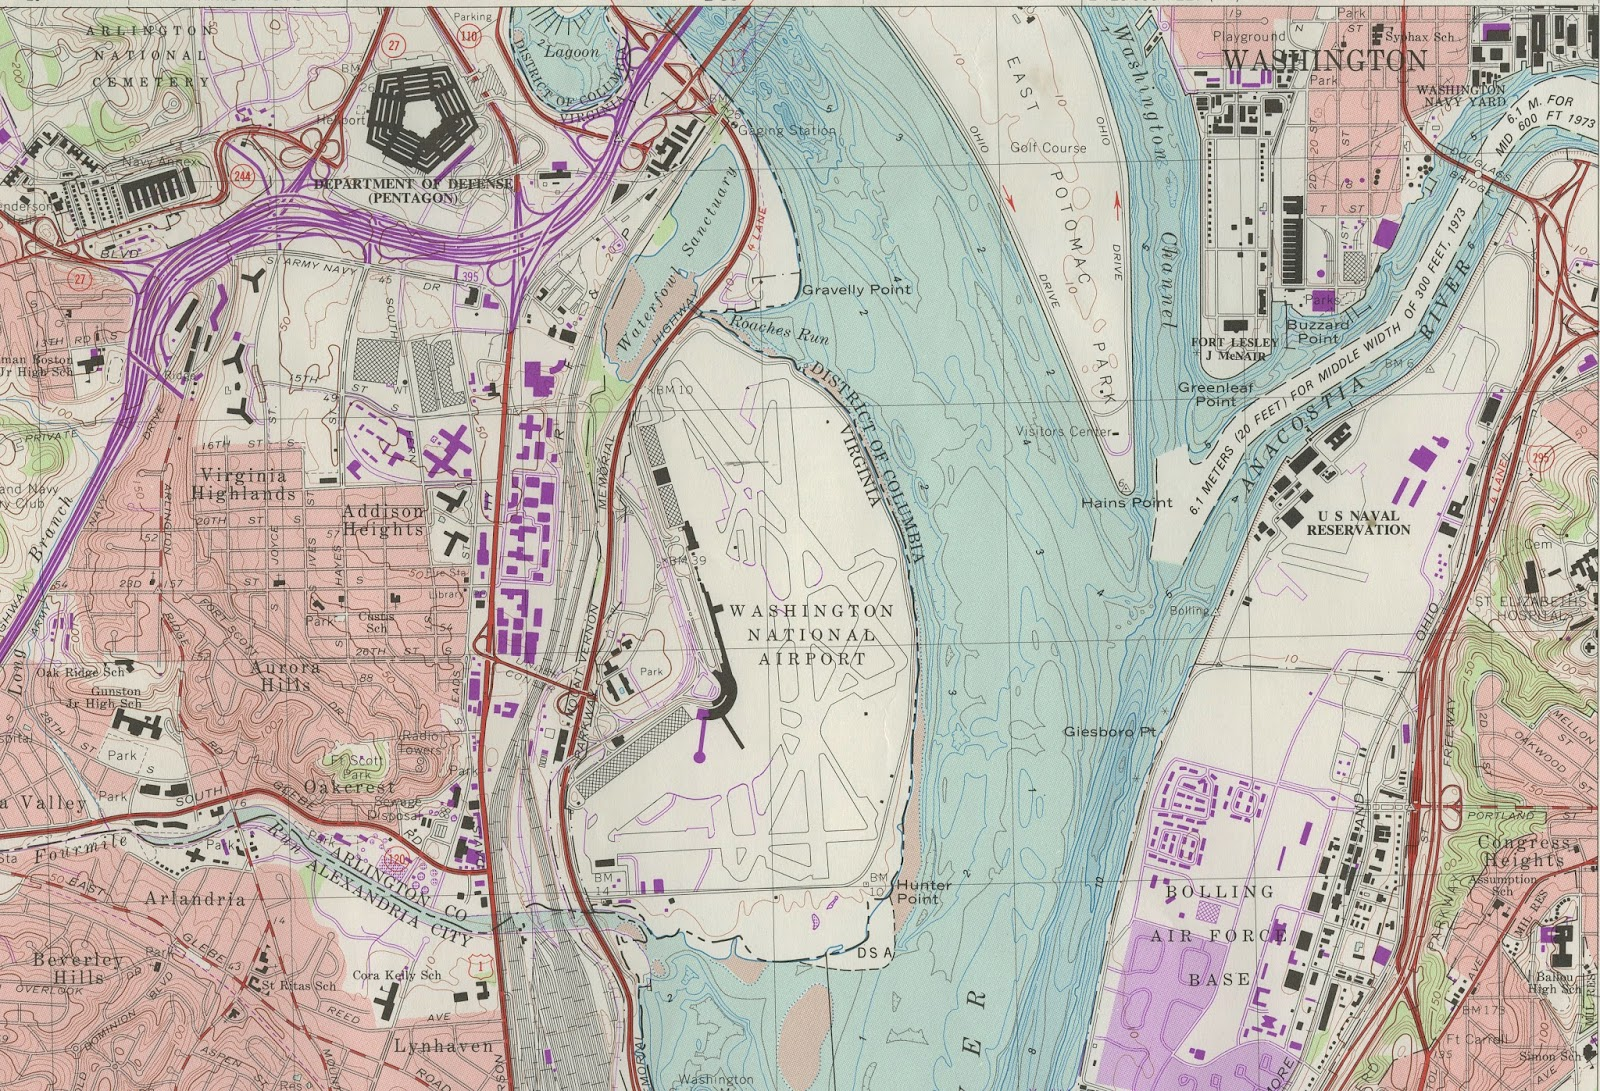 GIS Research And Map Collection Washington Navy Yard Maps